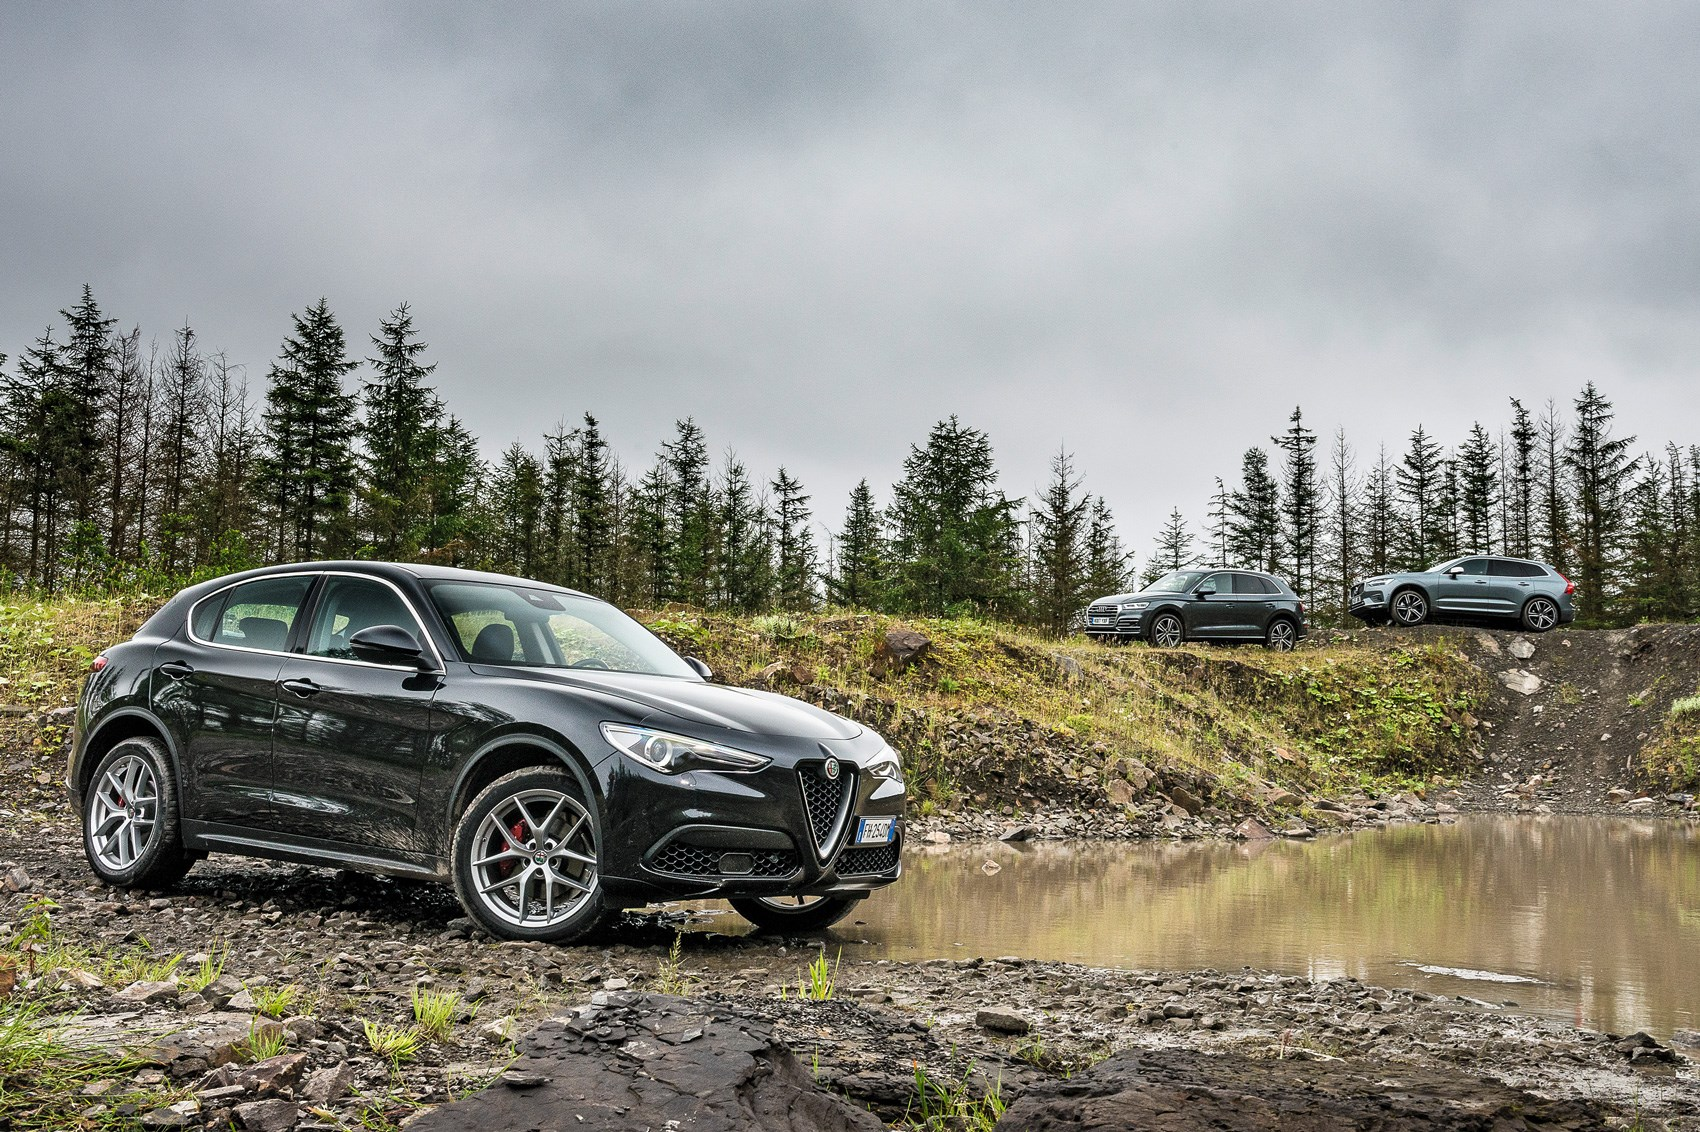 Land Rover Vs Jeep >> Alfa Romeo Stelvio vs Volvo XC60 vs Audi Q5 triple test ...